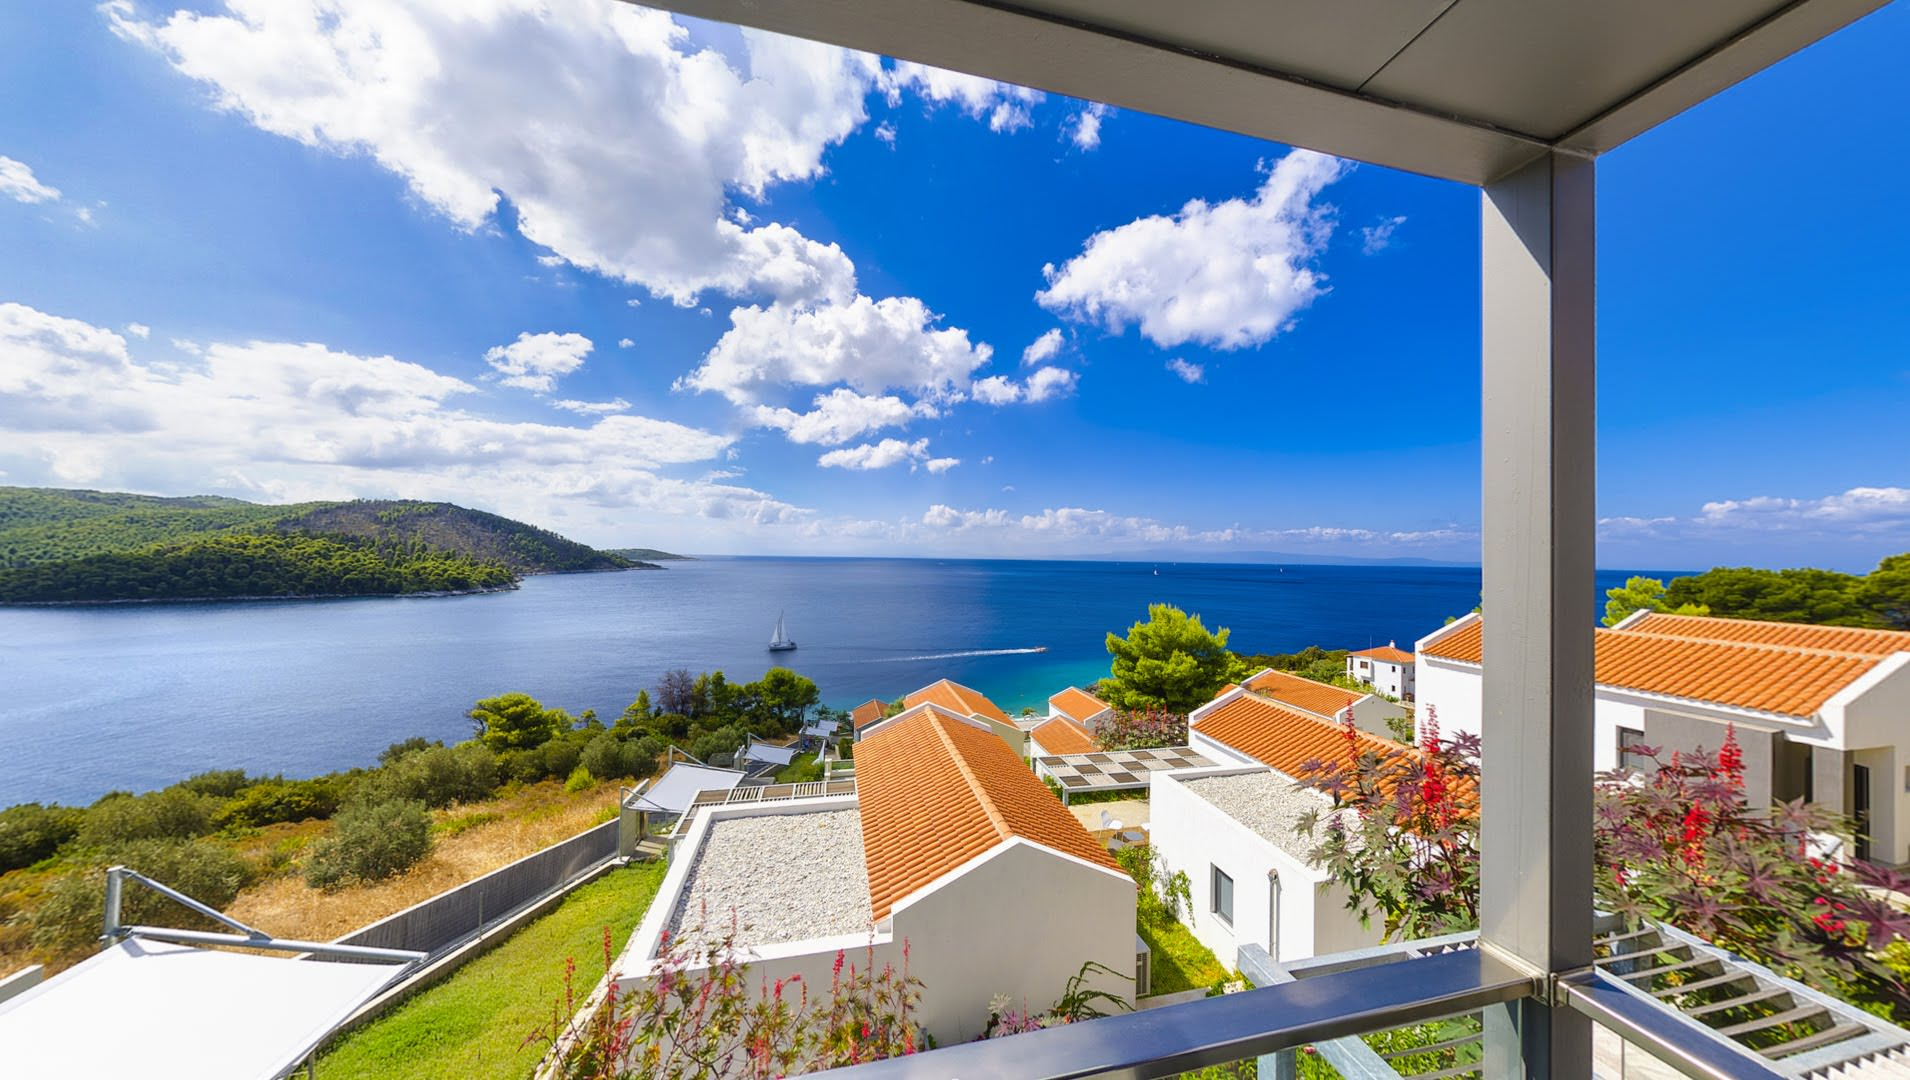 skopelos hotels adrina resort 1 beroom 2 level villa 04.54